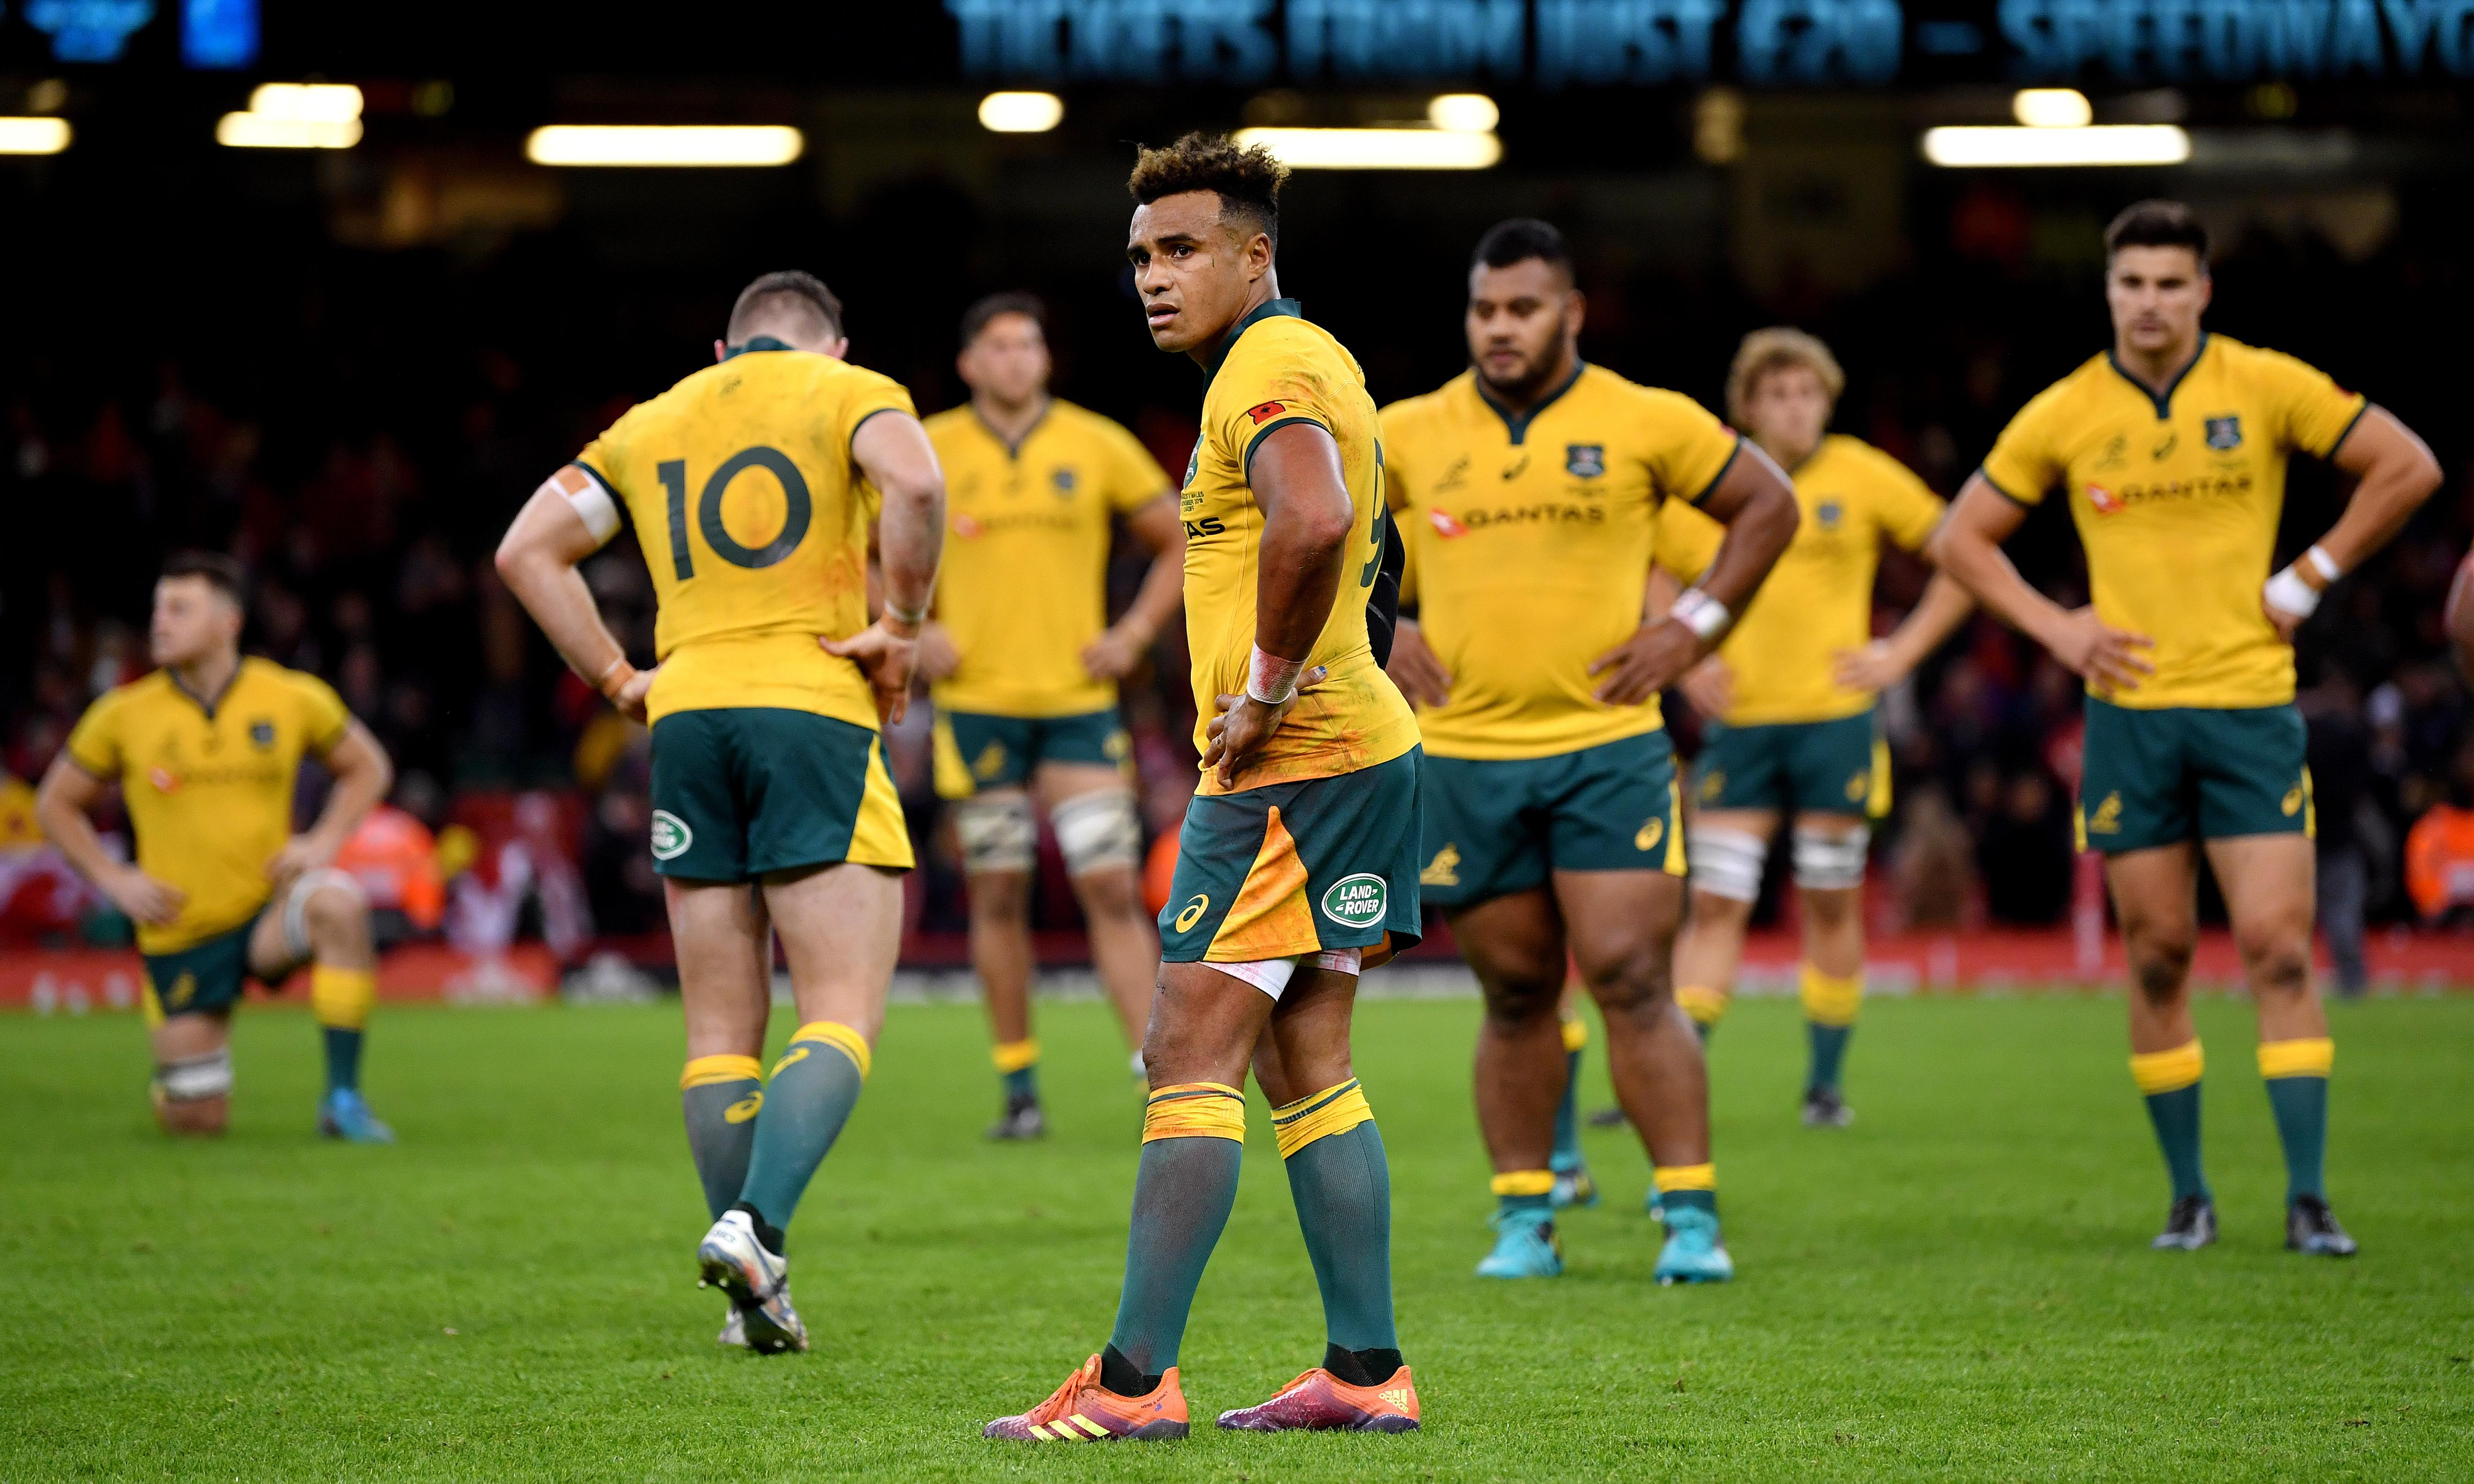 Michael Cheika channels his roots in Wallabies' revamped attack for World Cup